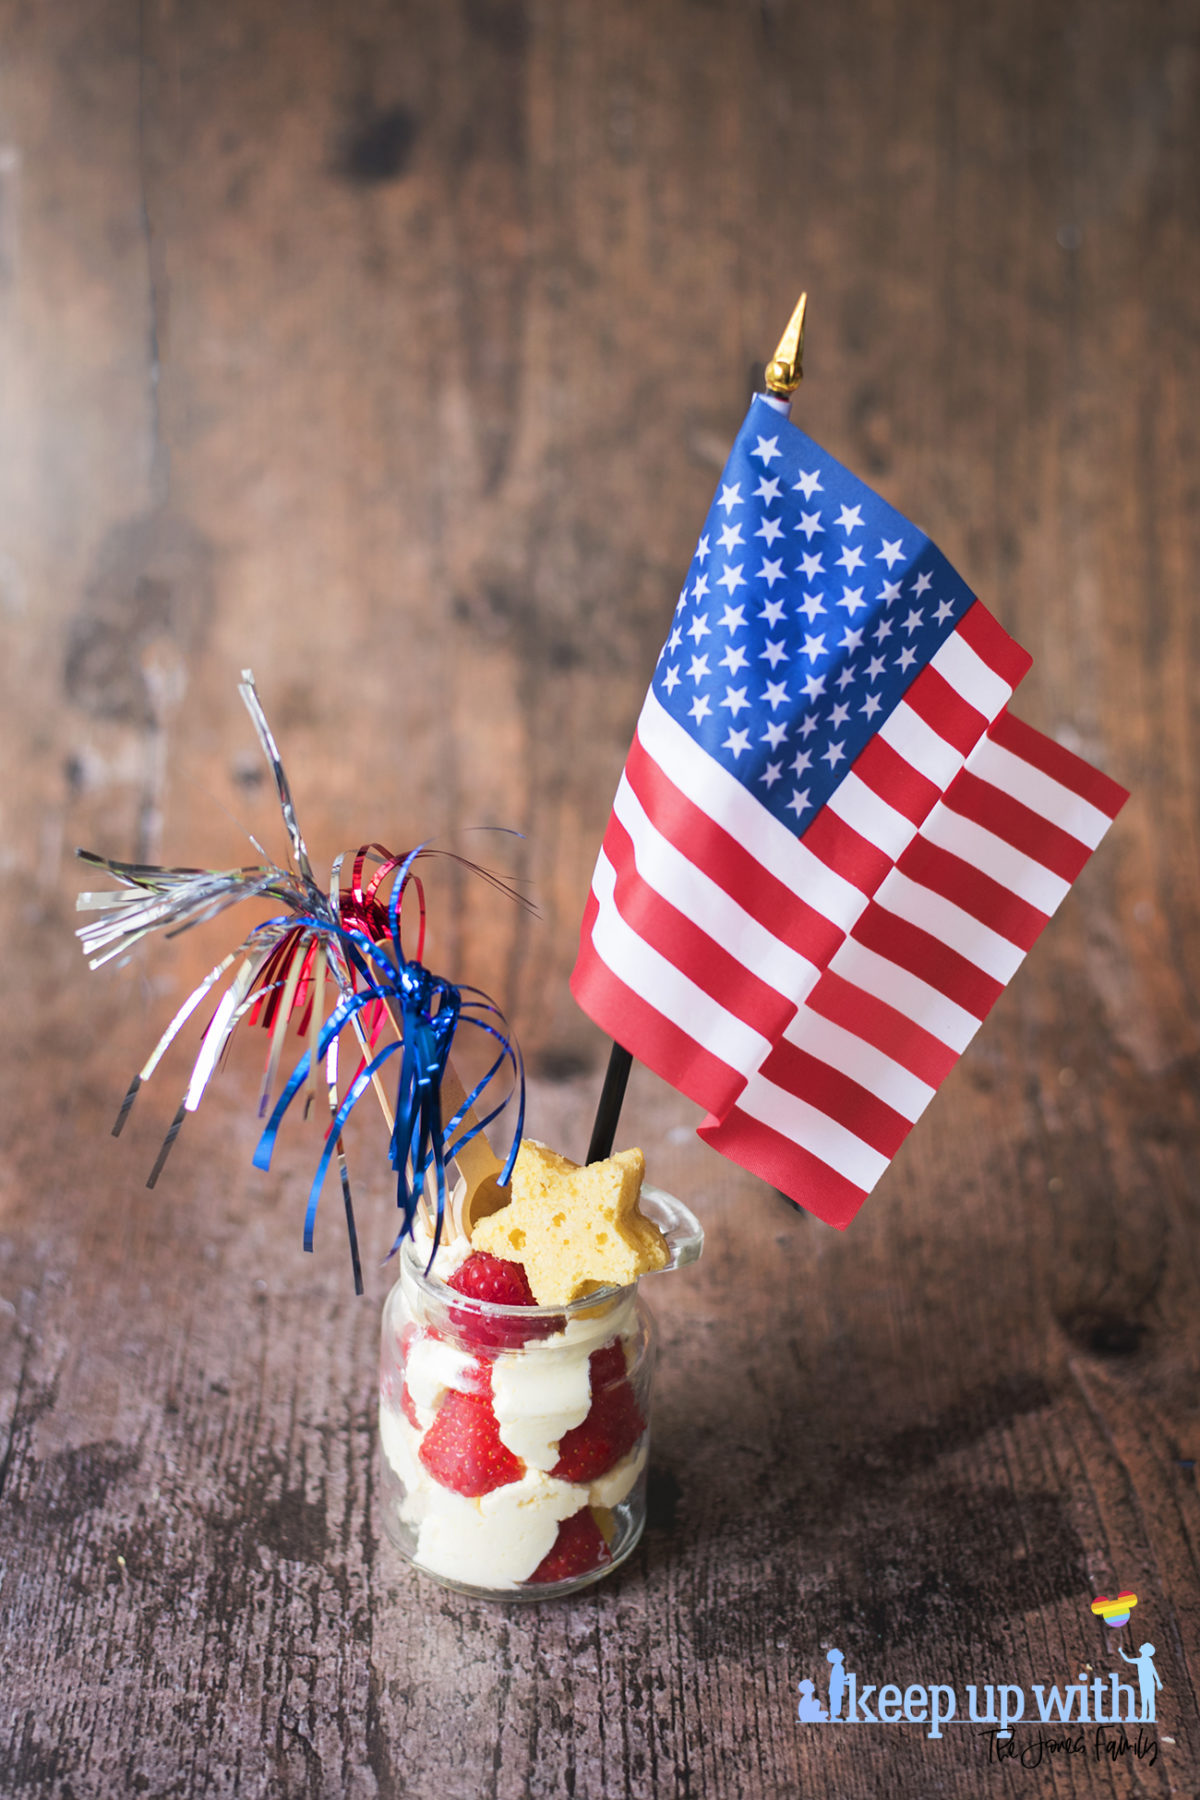 Image shows a 4th July Strawberry Cake Jar dessert on a dark wooden tabletop. The jar contains piped whipped cream and strawberries, with stars cut out of vanilla angel cake inside and on top. There is an american flag and three metallic firework sparklers in red, white and blue sticking out of the jar. Image by Sara-Jayne Jones of Keep Up With The Jones Family.